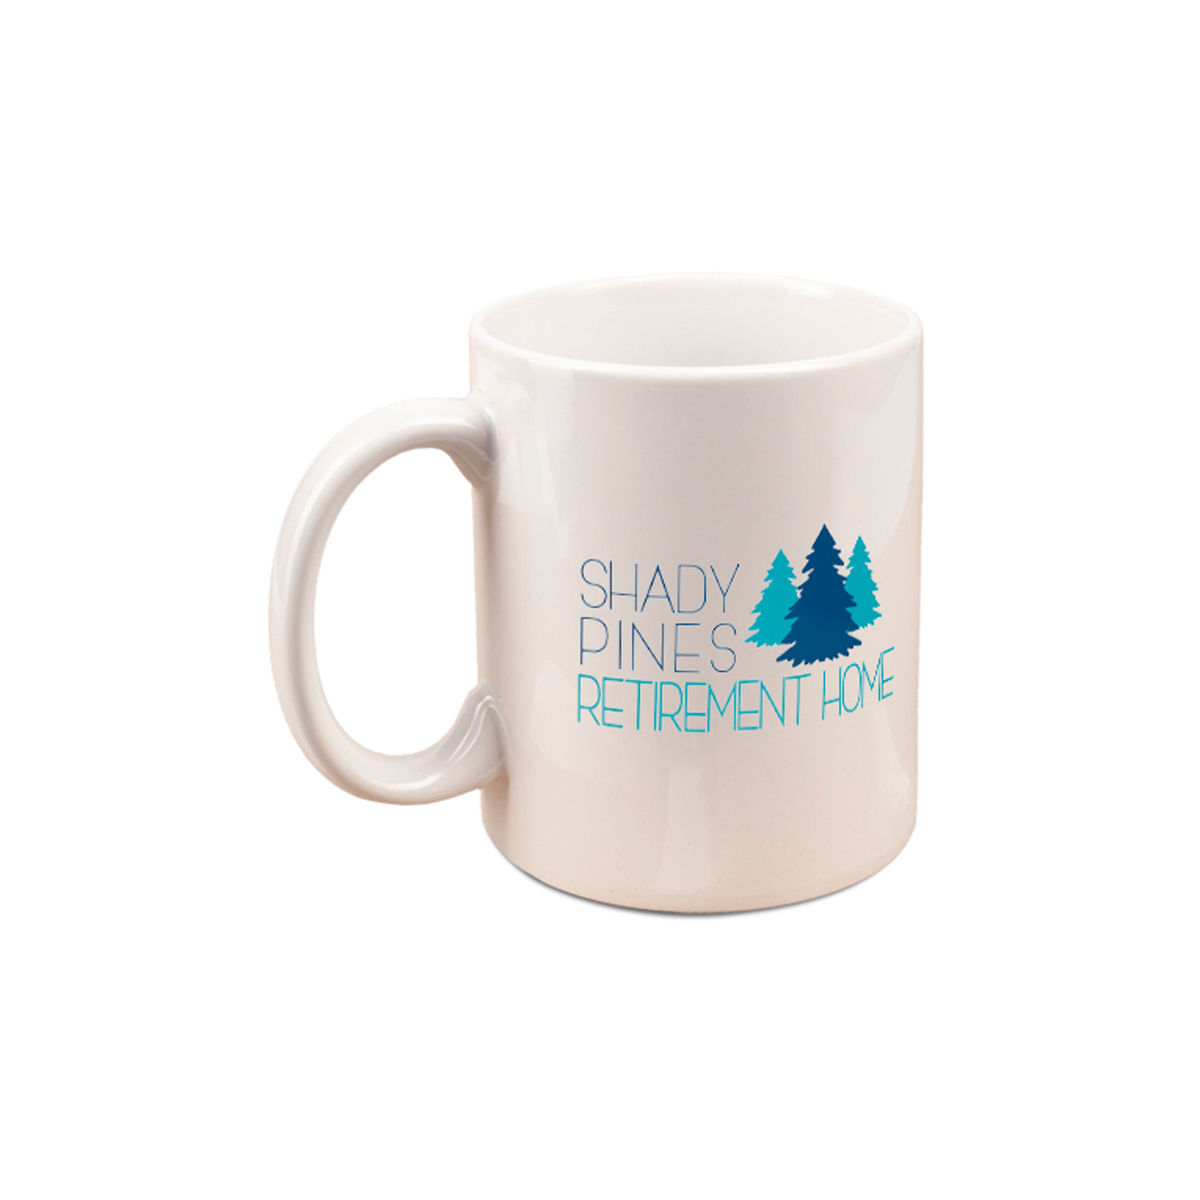 The Golden Girls Shady Pines Mug